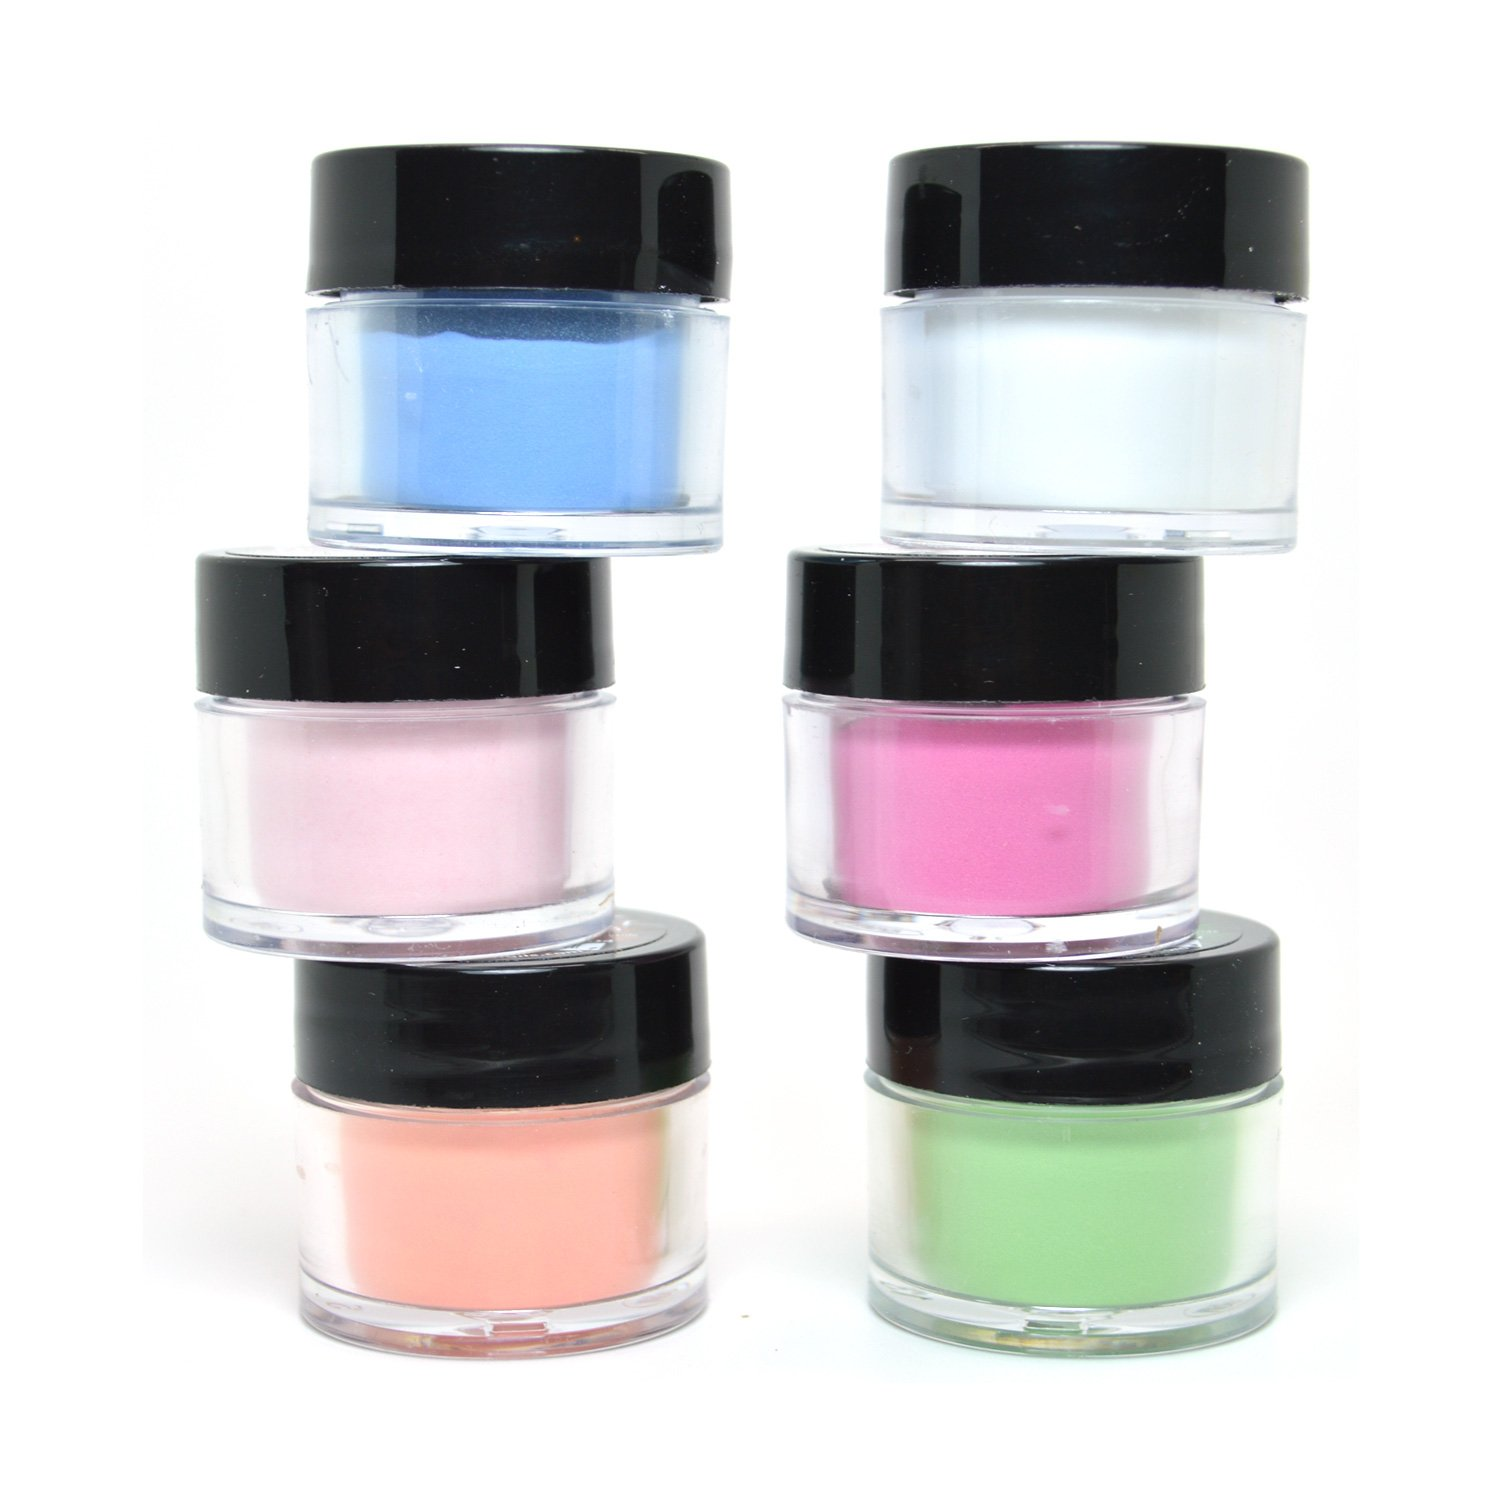 6 PCS MIA SECRET NAIL ART ACRYLIC POWDER NEON GLOW IN THE DARK + FREE EARRING by Mia Secret